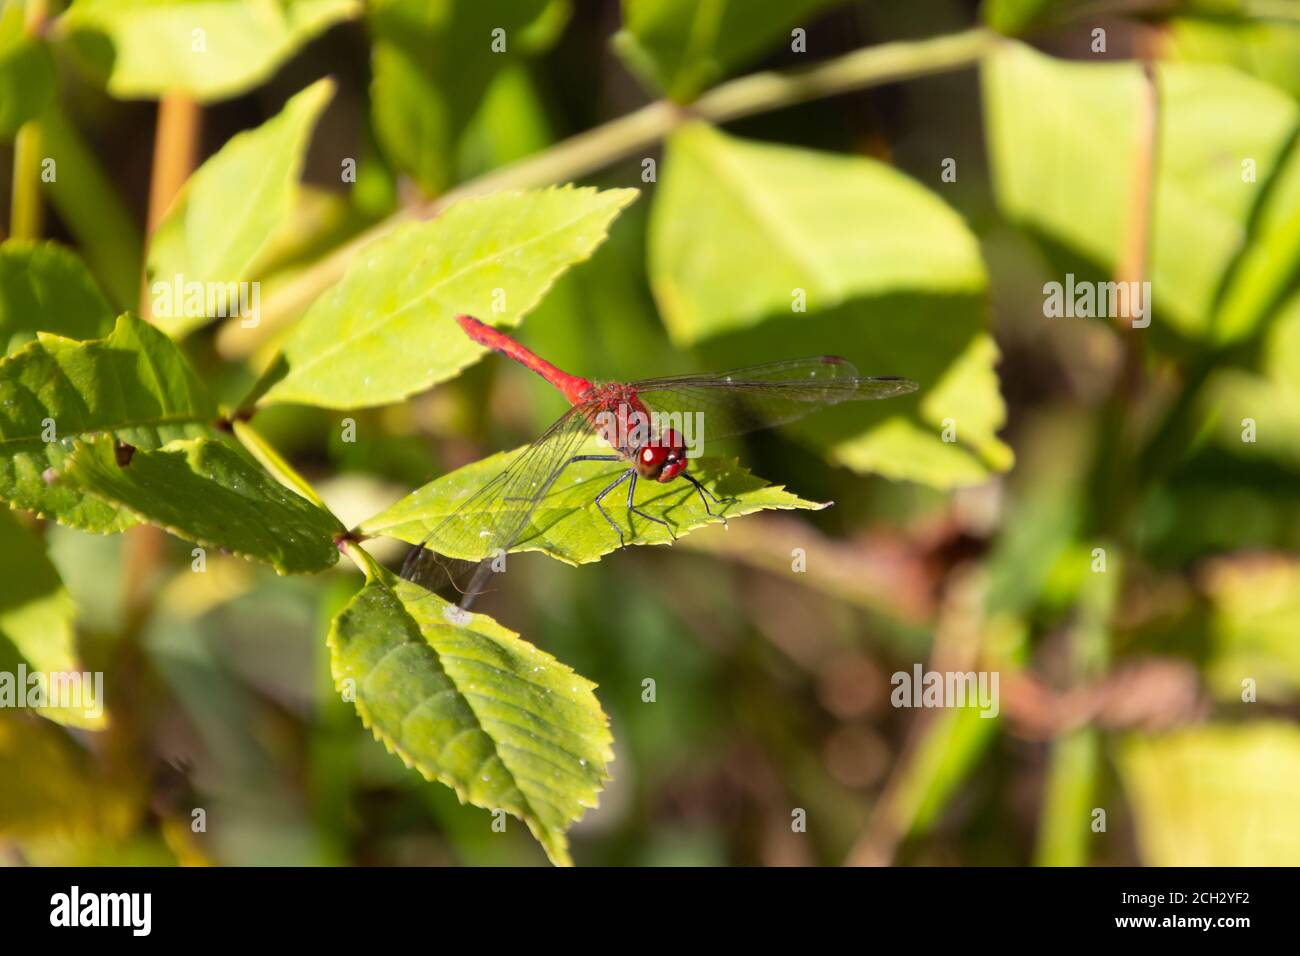 Close up of a scarlet darter dragonfly, also called Crocothemis erythraea or Feuerlibelle Stock Photo